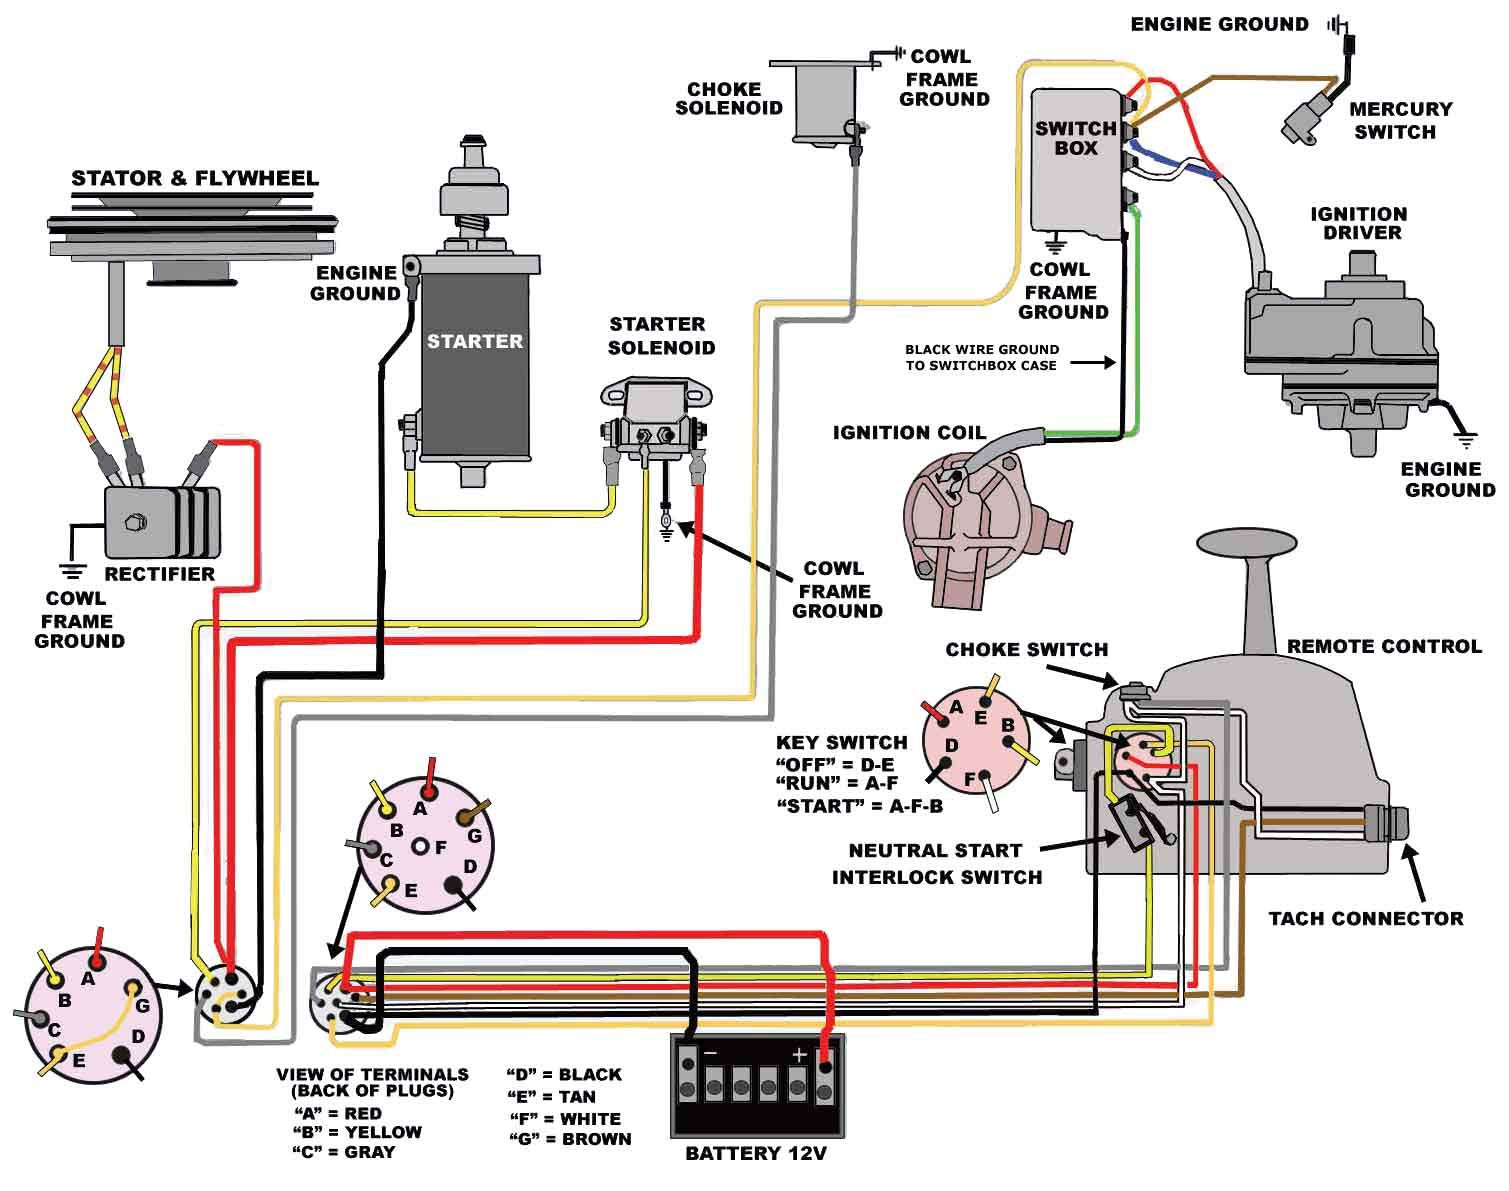 small resolution of mercury outboard wiring diagram c u0026imercury outboard wiring print 13